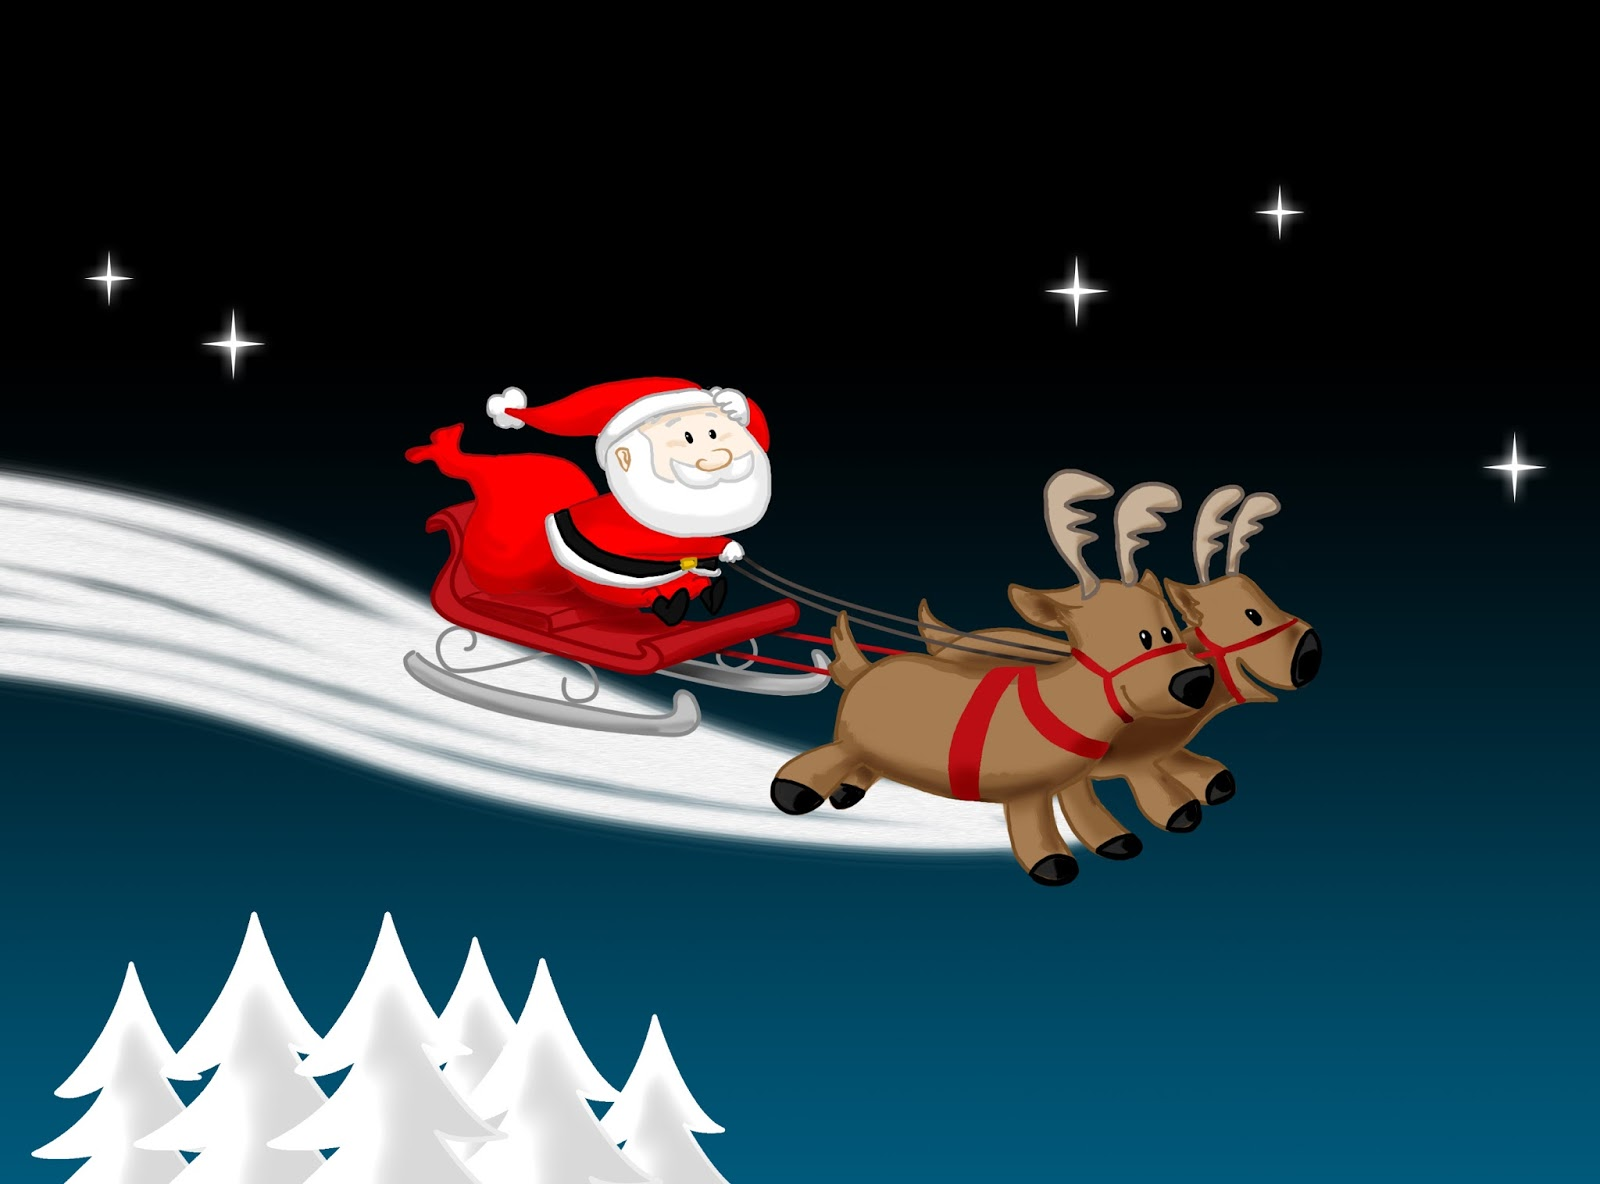 santa and reindeer from north pole wishing happy christmas for